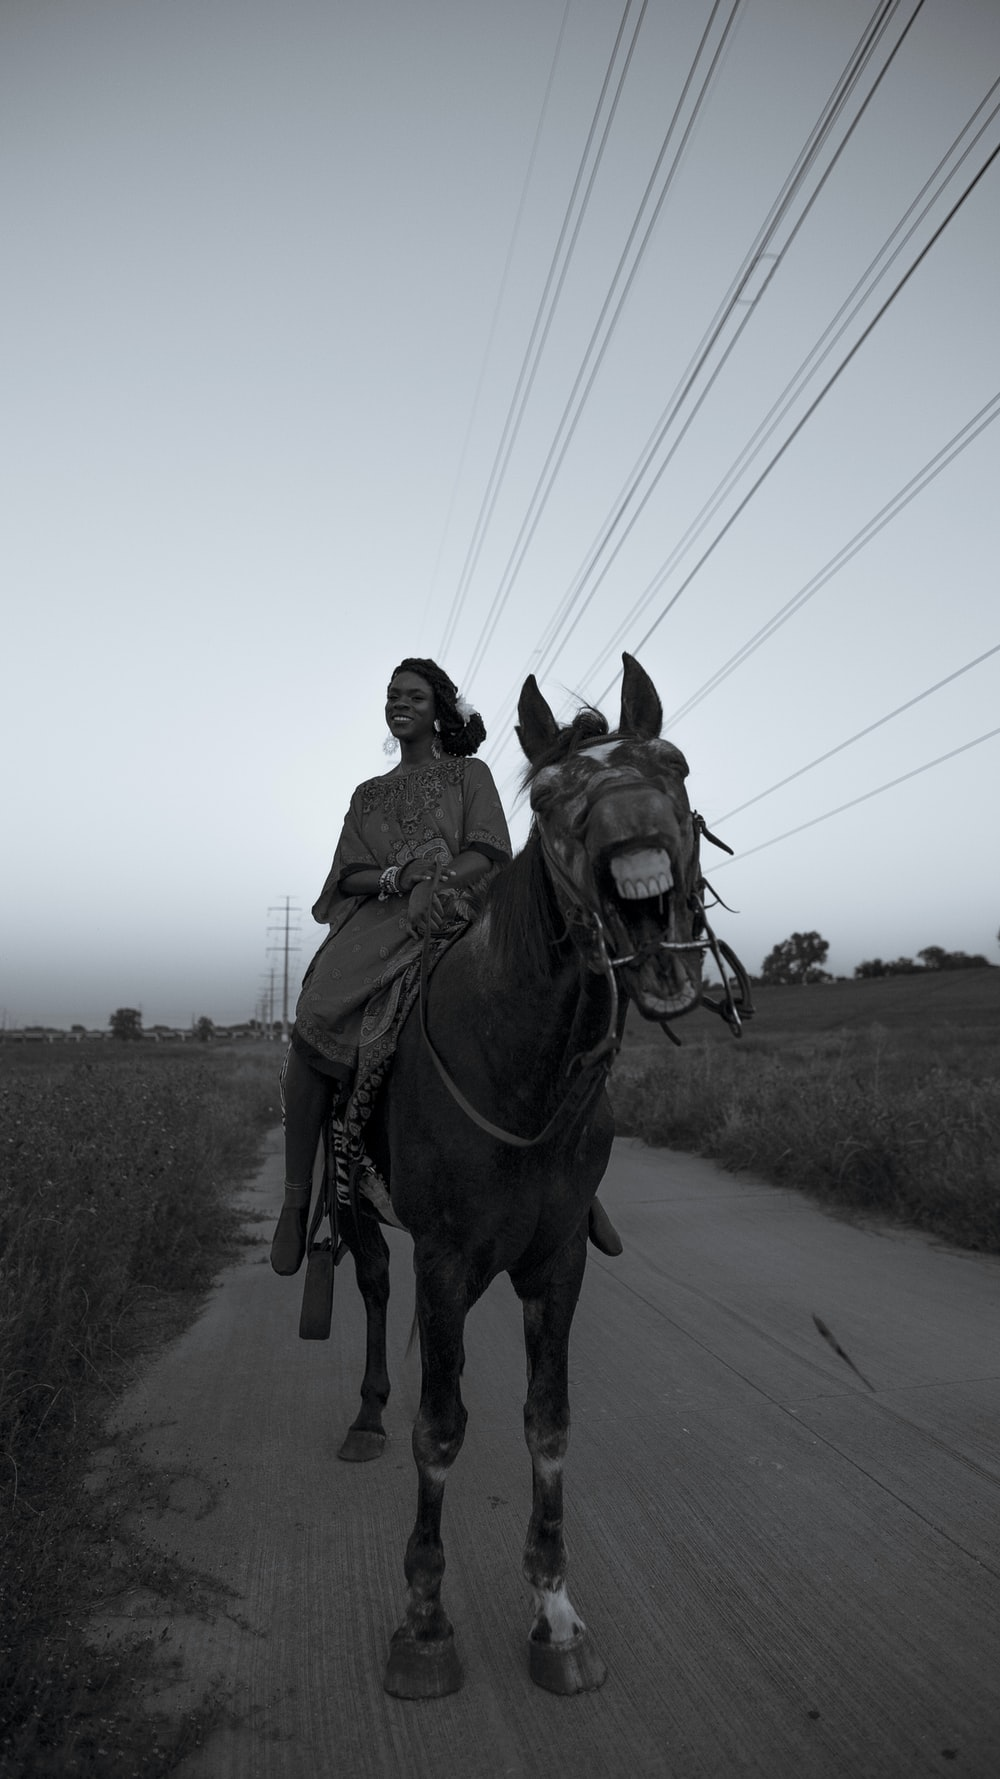 man riding horse on road during daytime